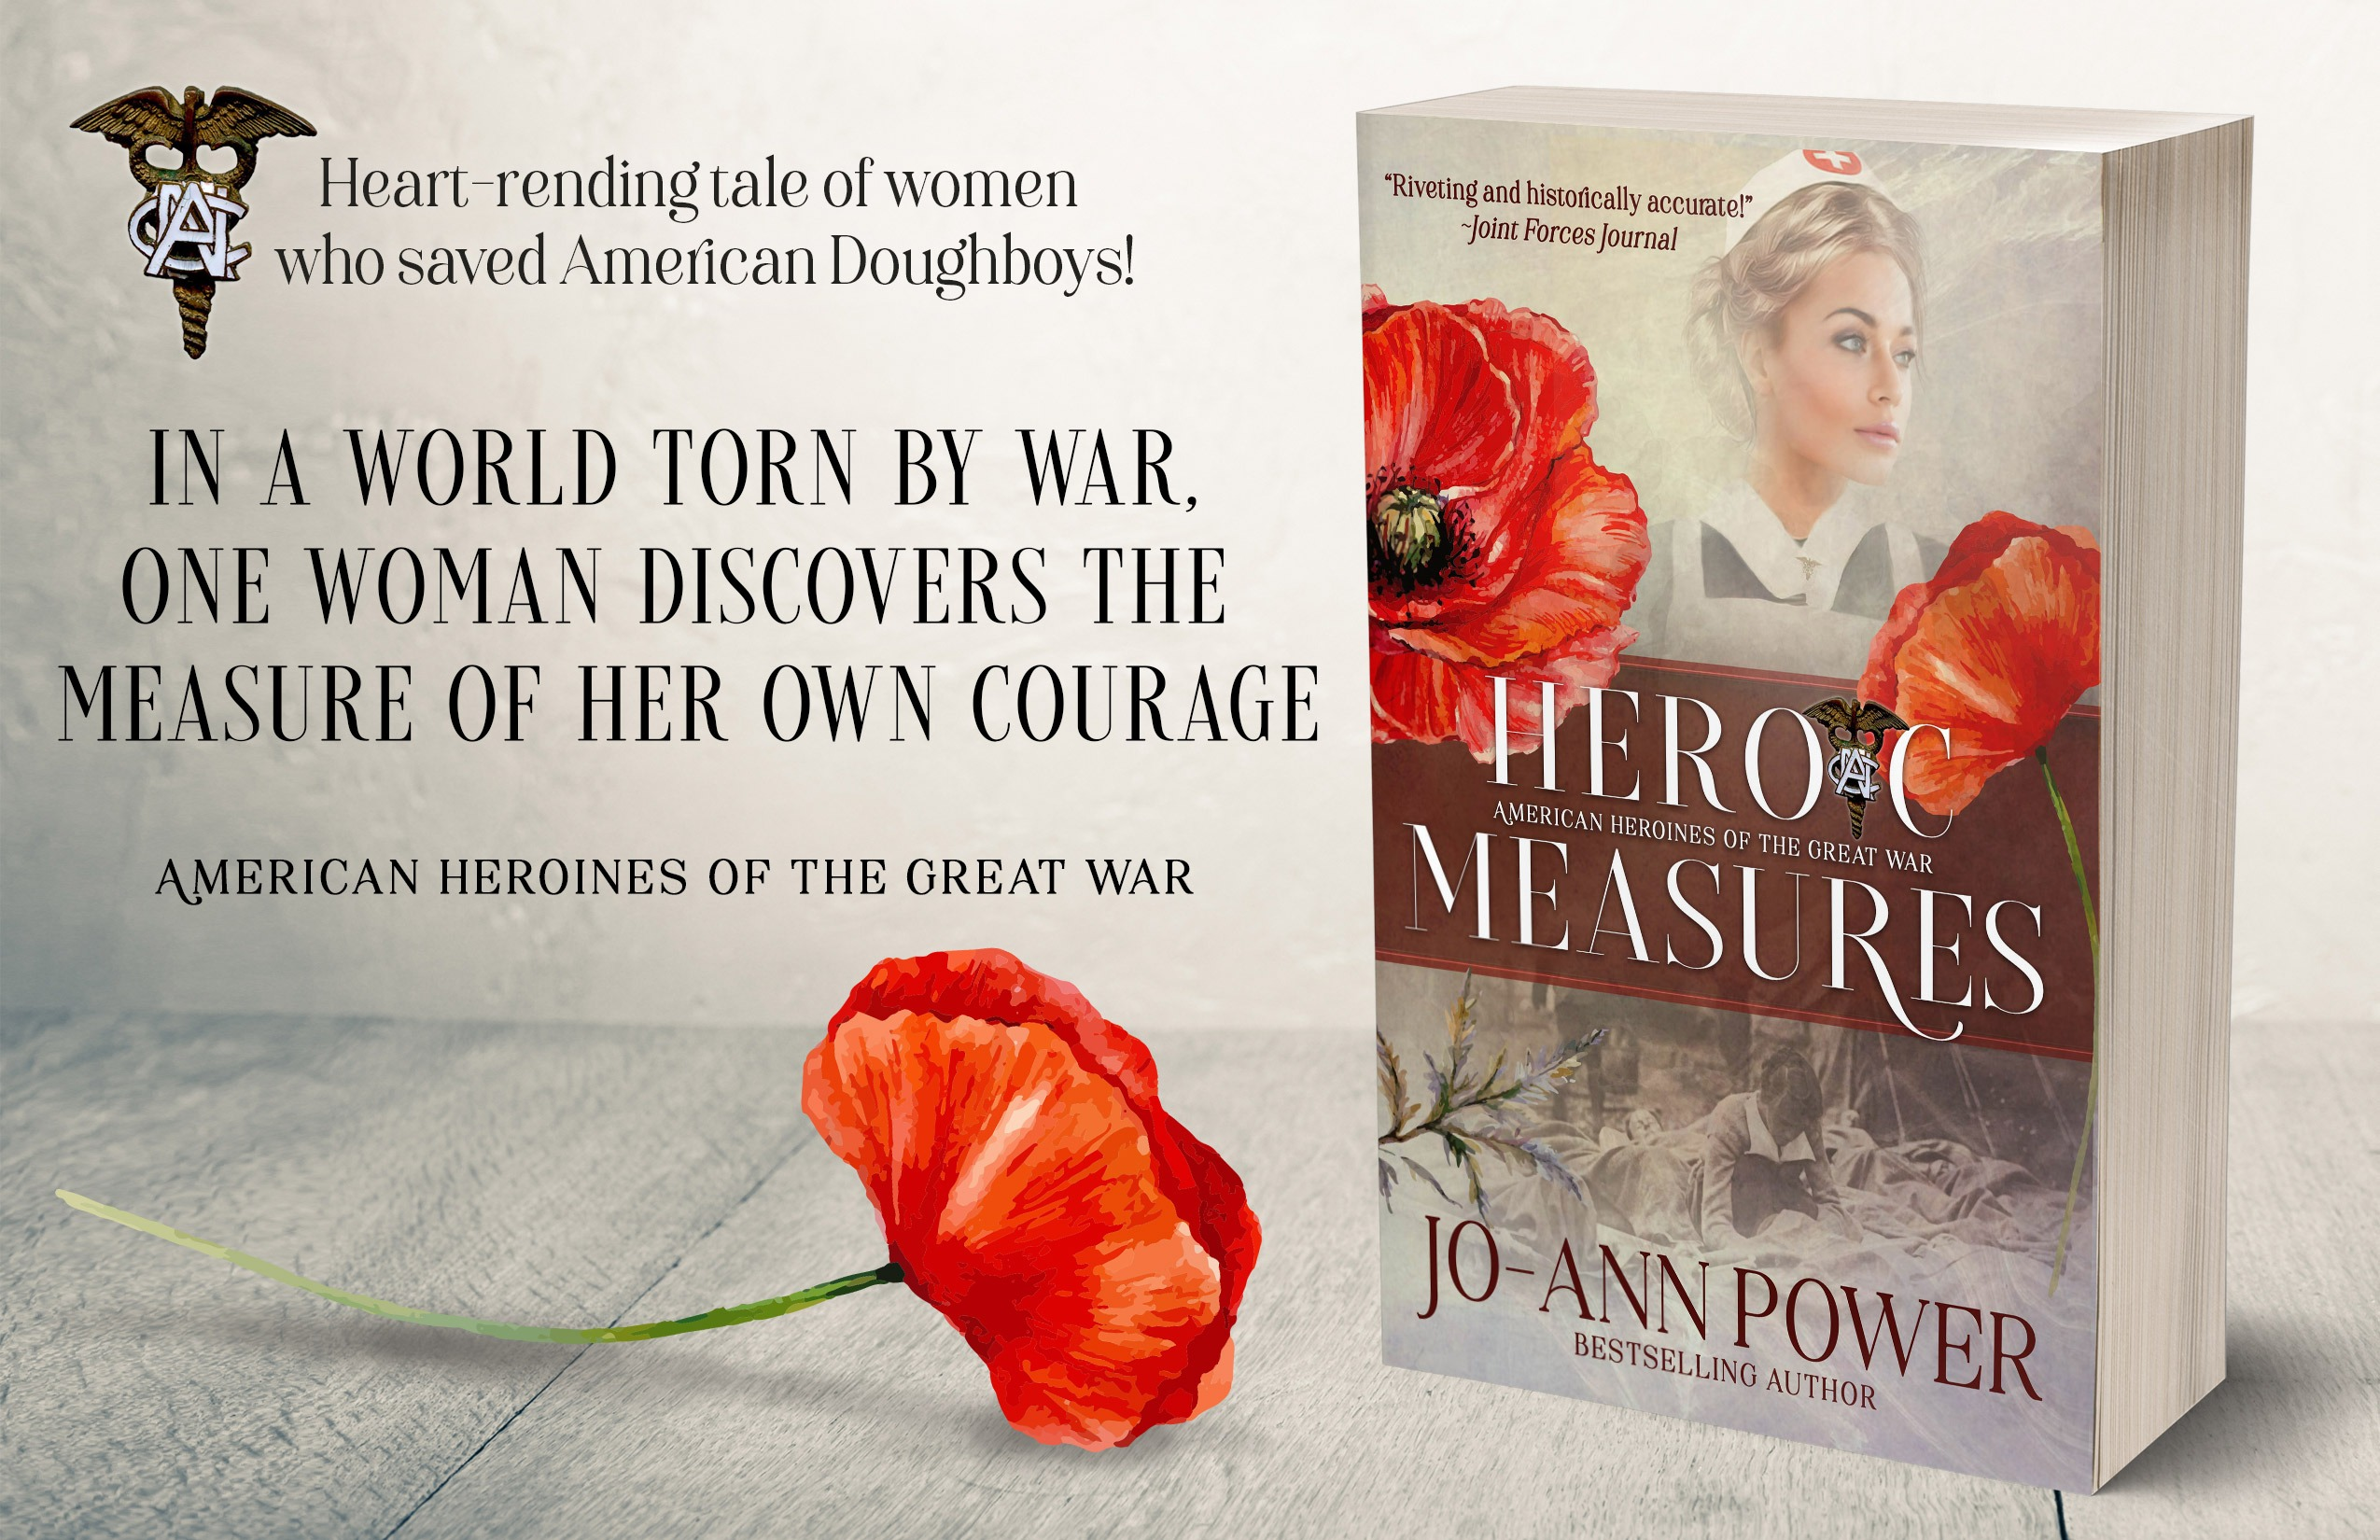 HEROIC MEASURES by Jo-Ann Power ad-half-page